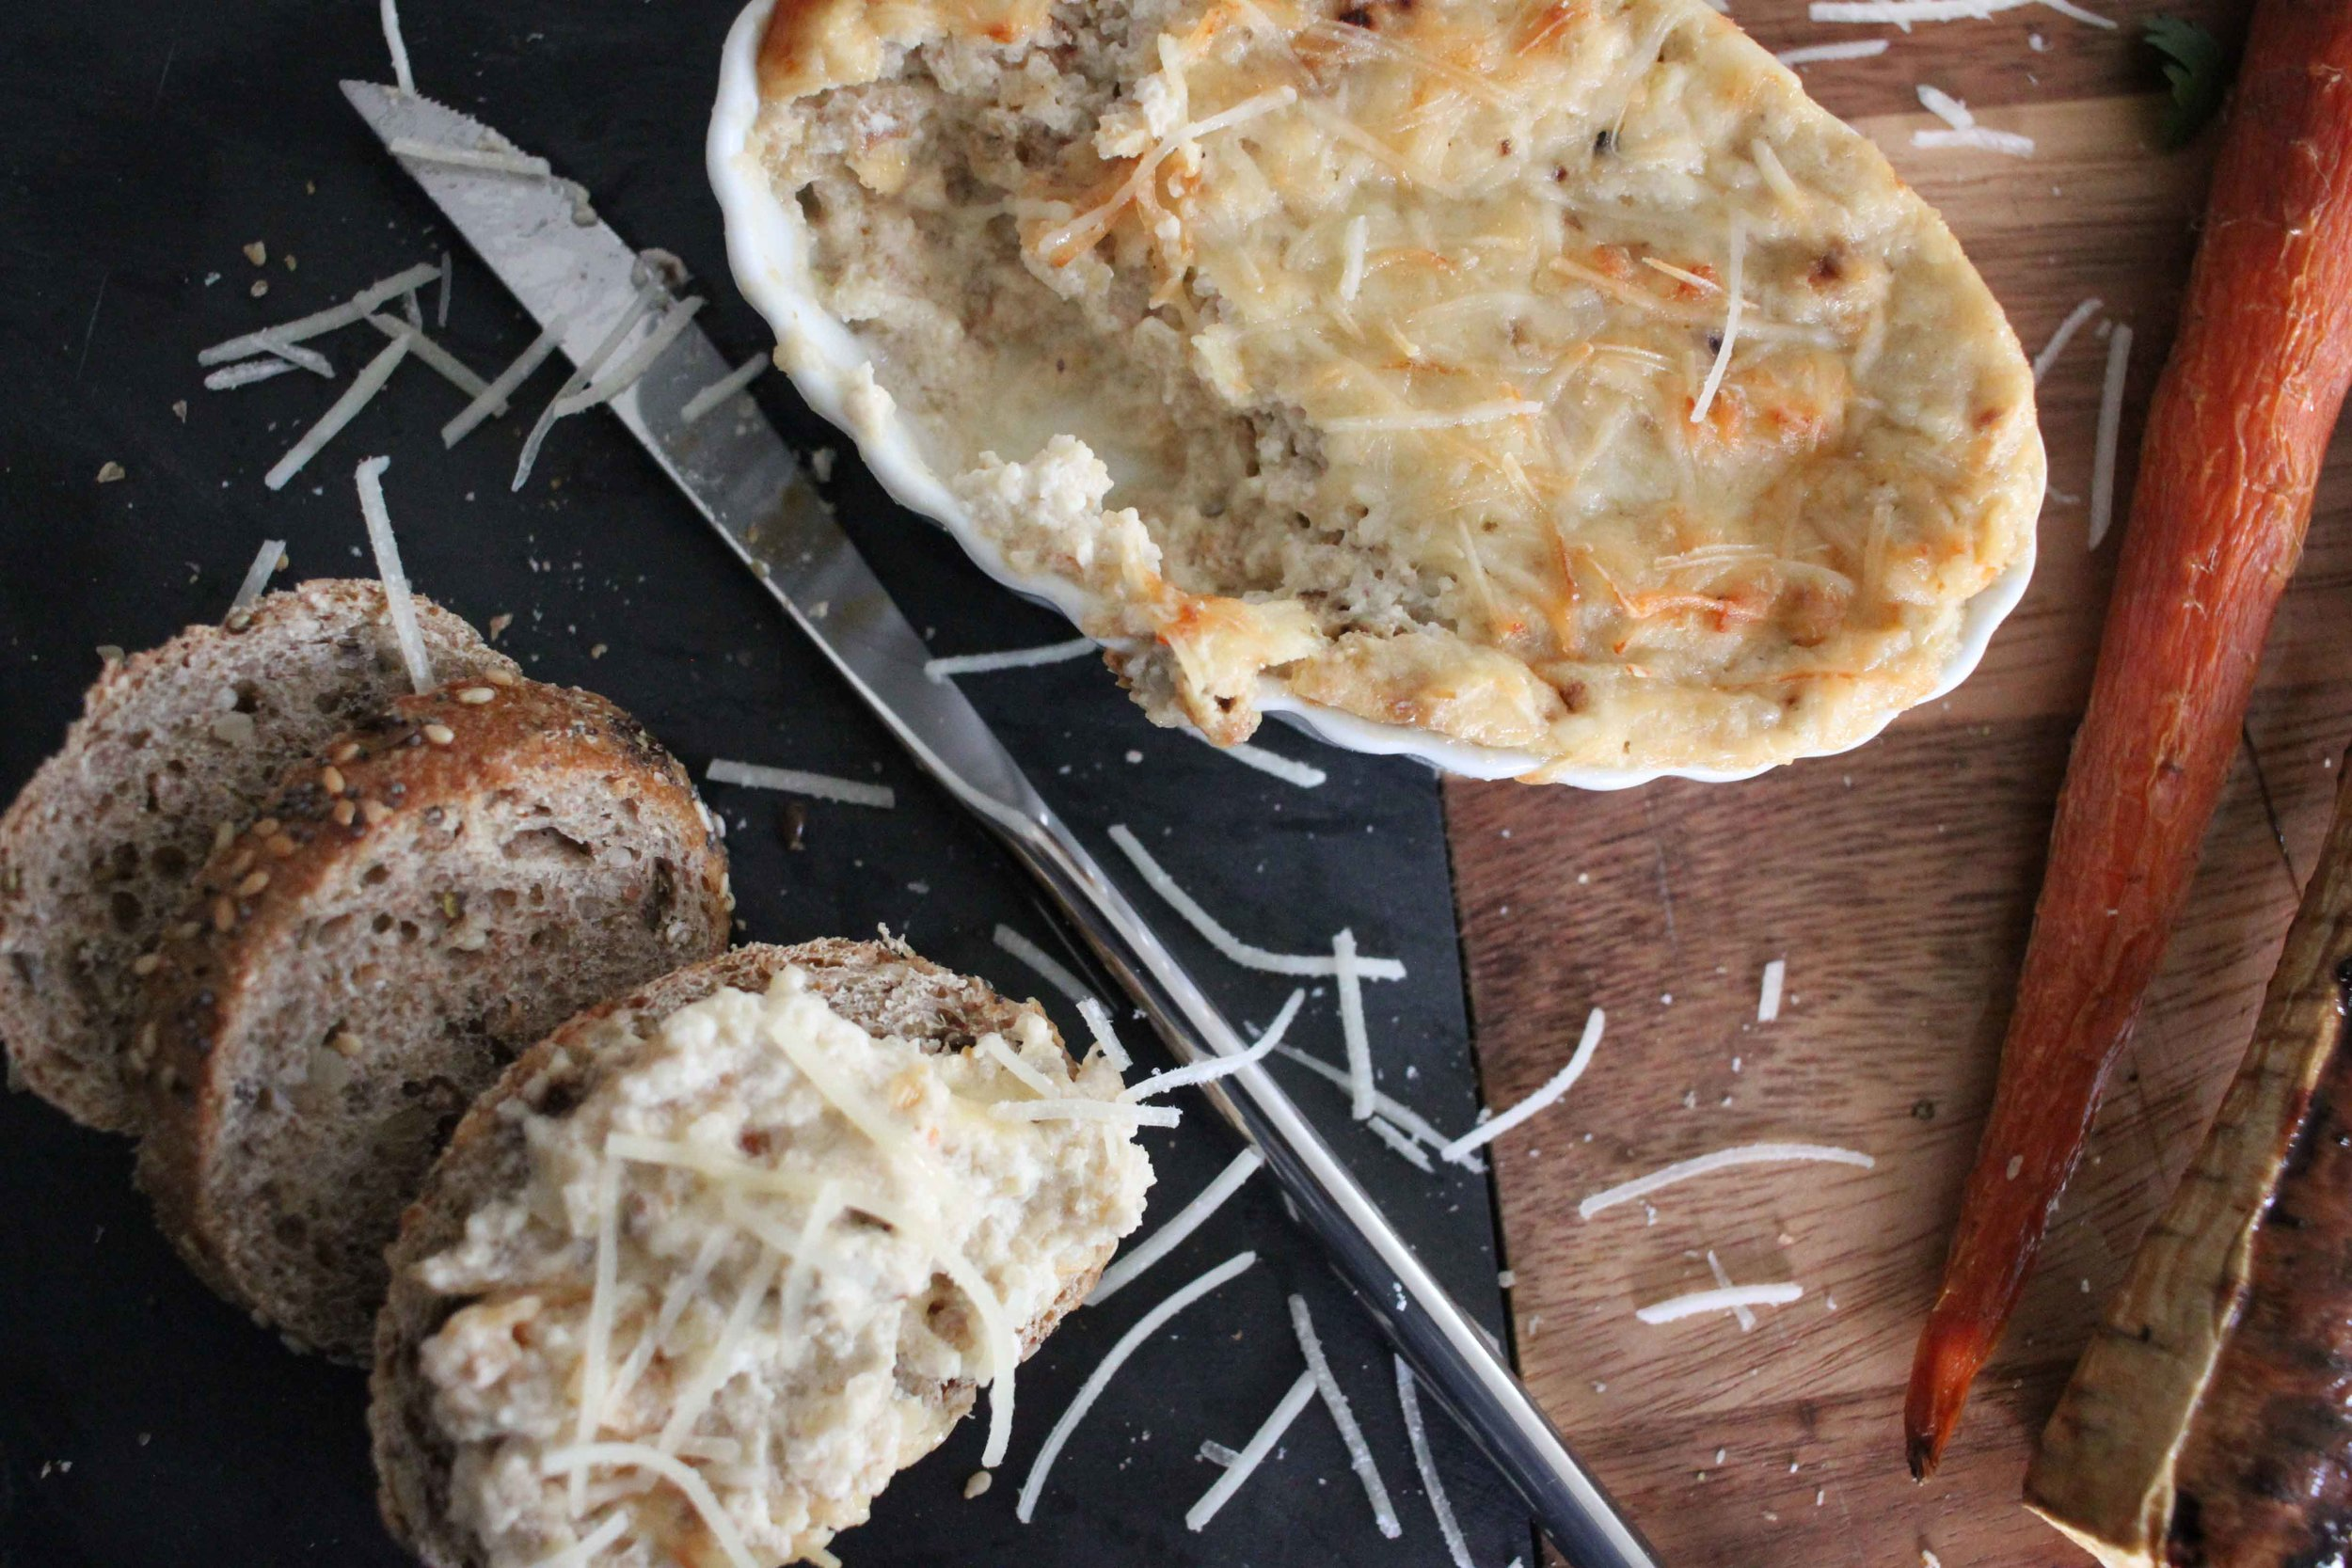 creamy roasted fennel dip served here with a baked baguette.